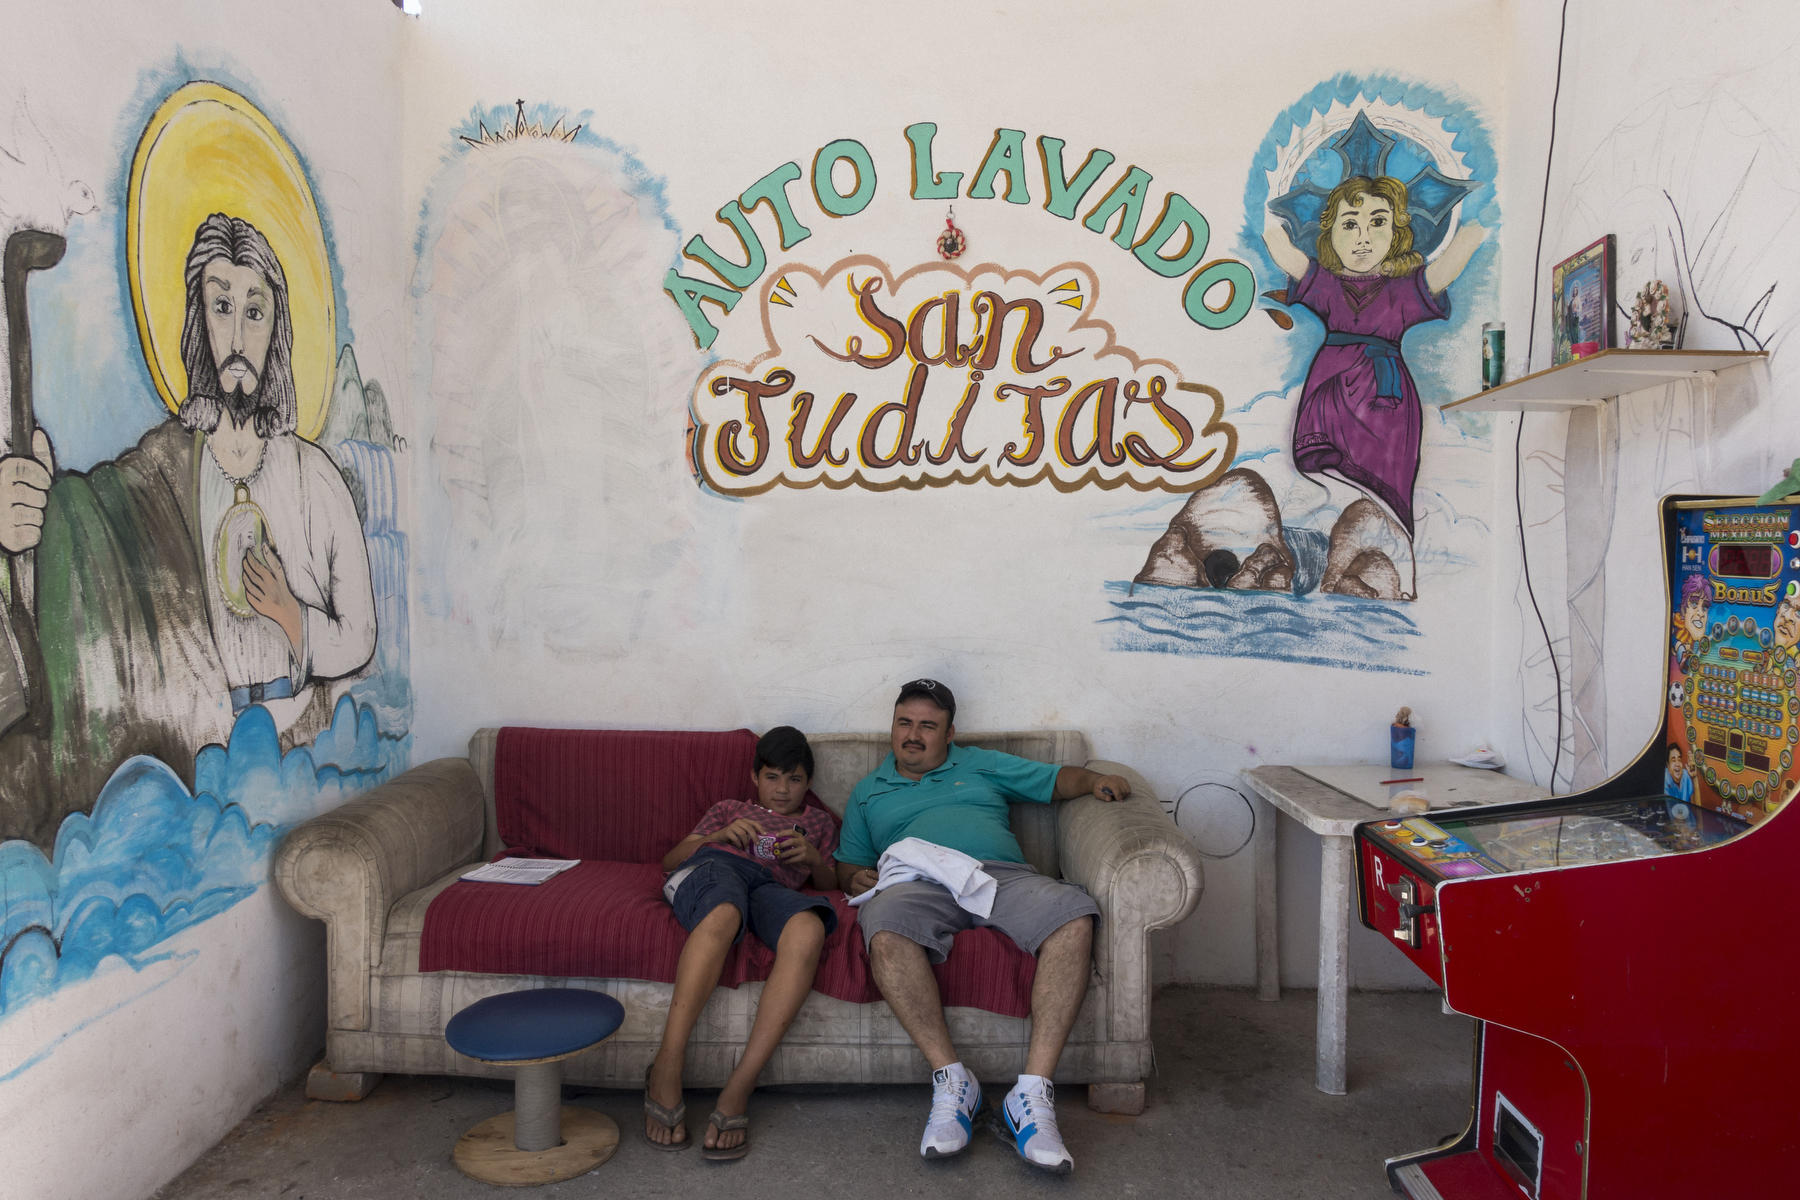 A father and son resting on sofa surrounded by religious murals at a car-wash.